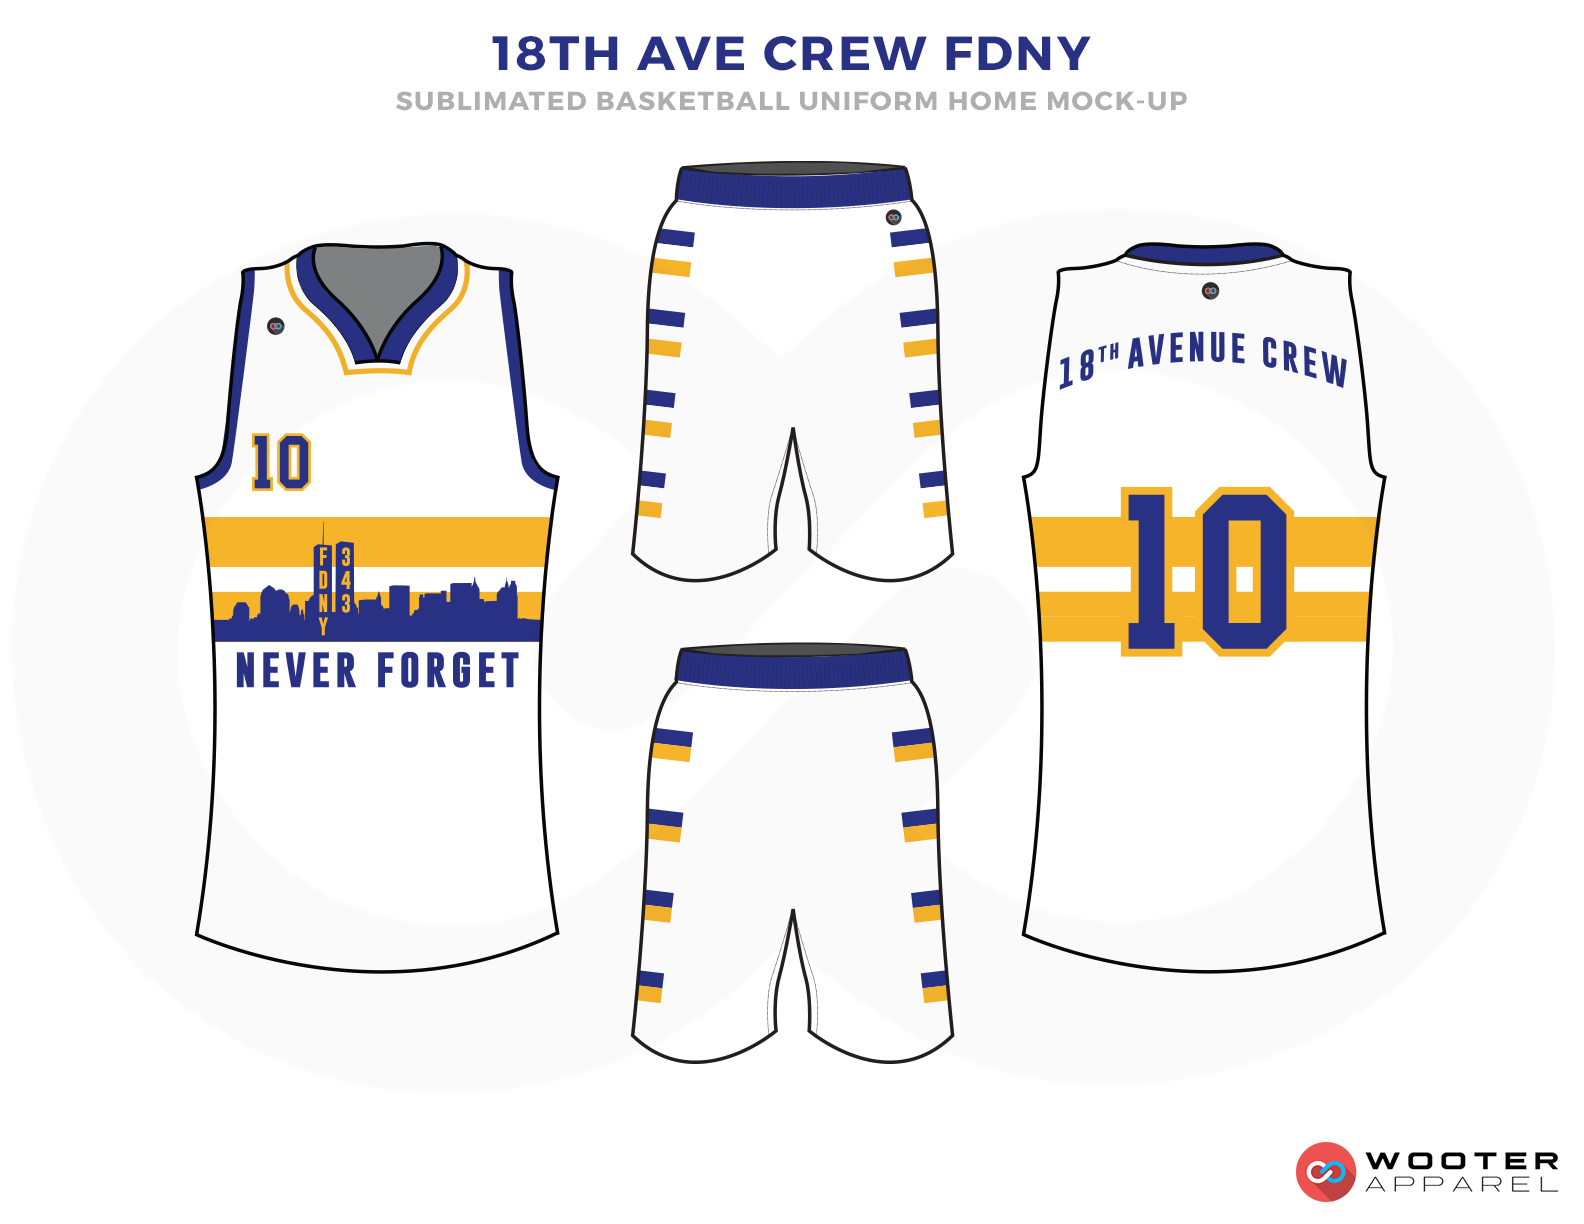 18th AVE CREW FDNY White Blue and Yellow Basketball Uniforms, Jersey and Shorts